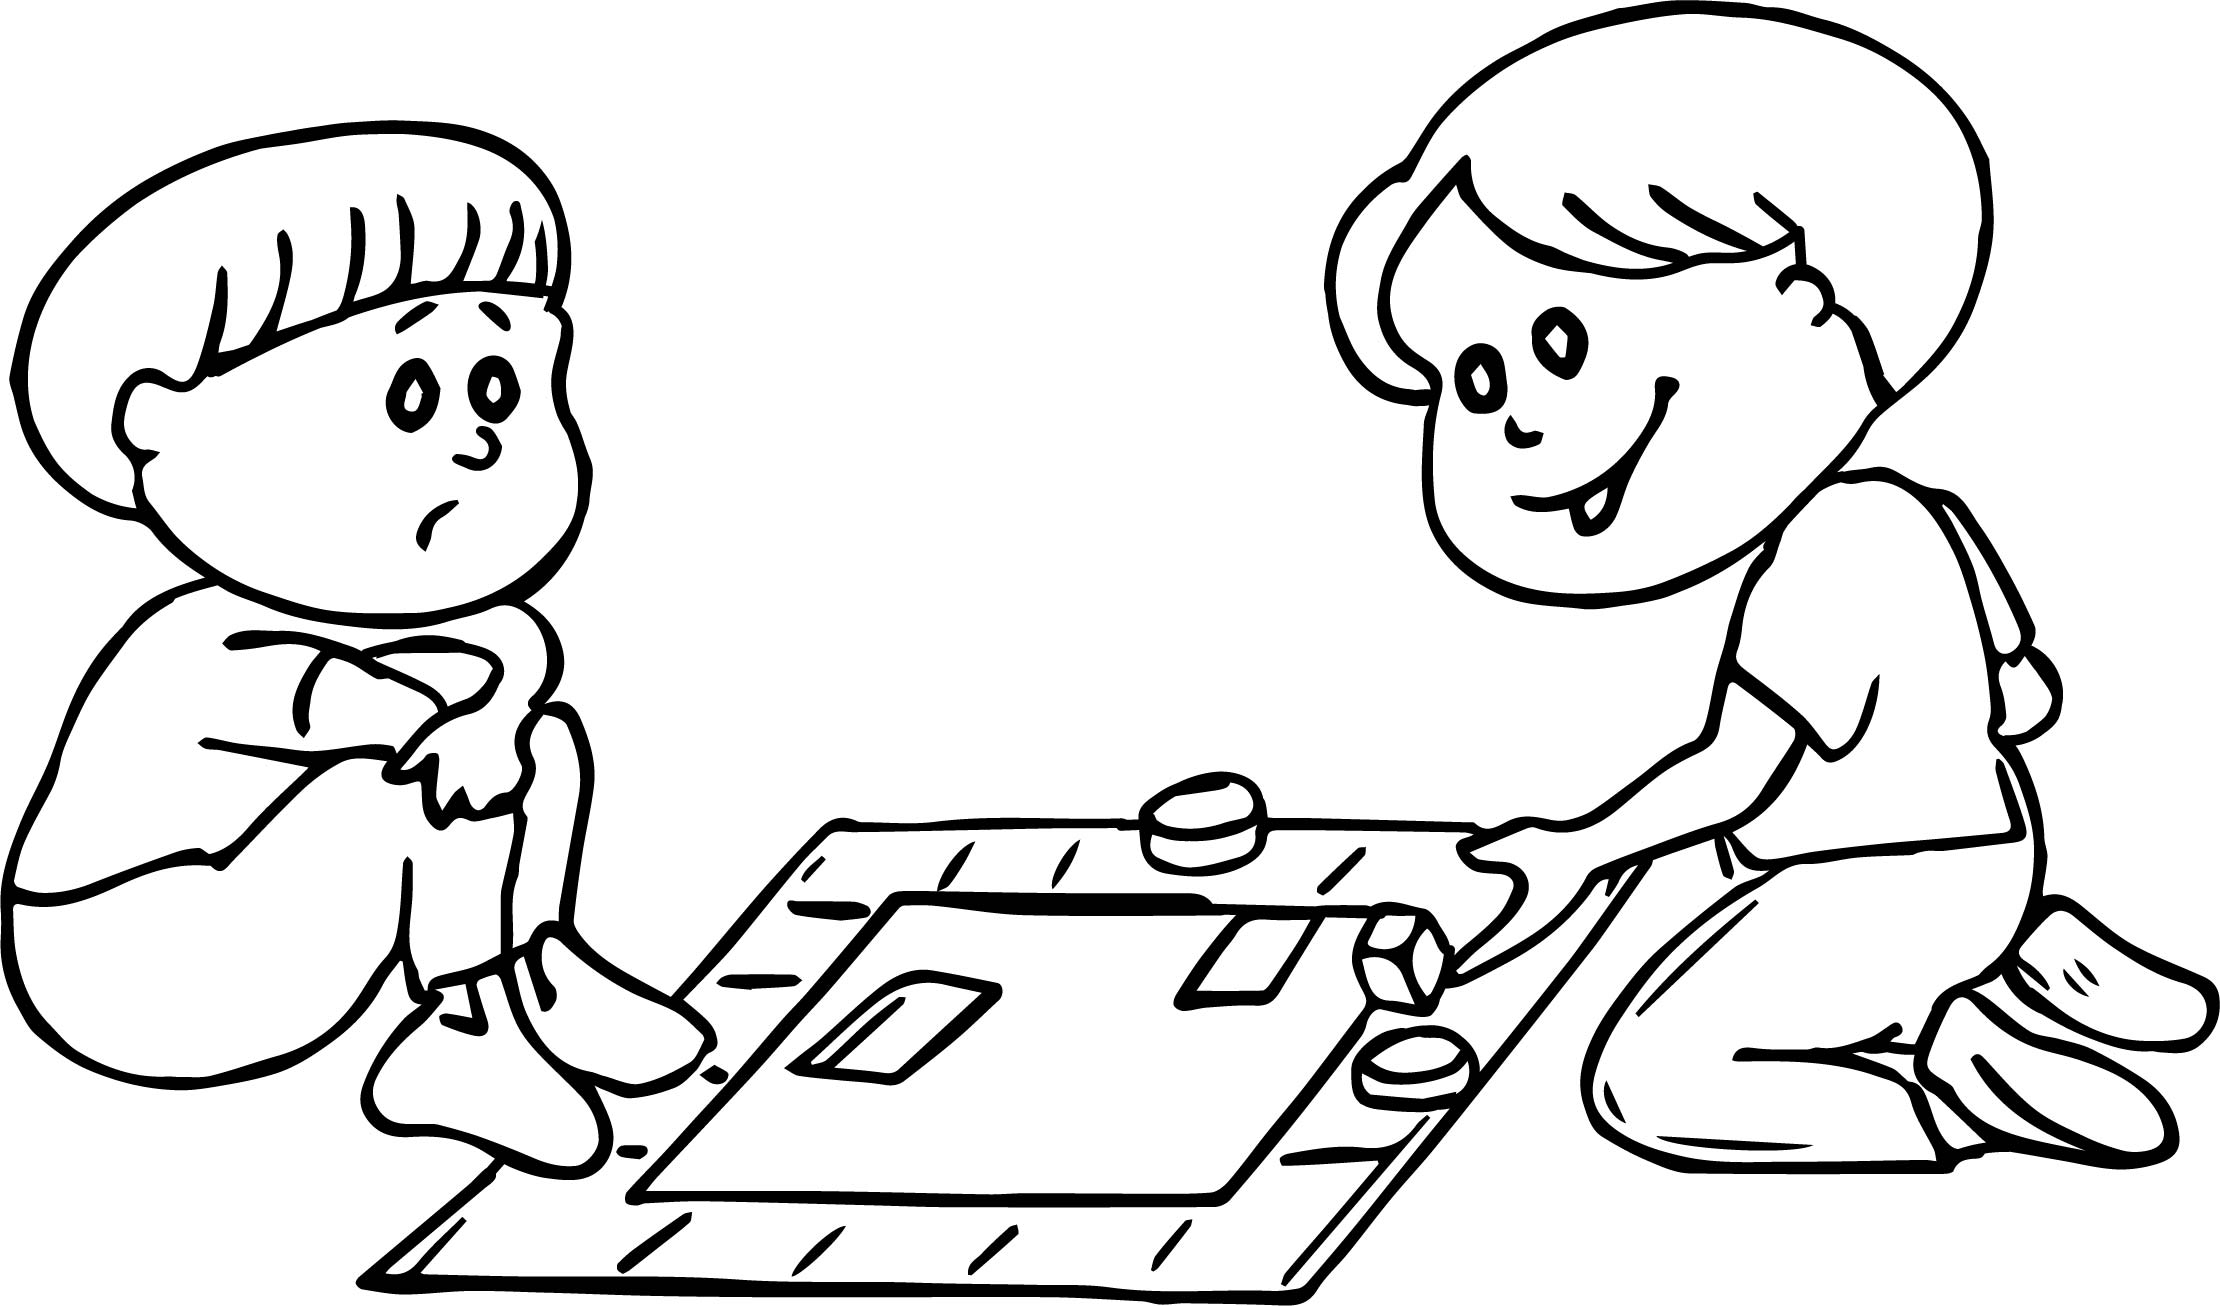 Board game loss coloring page for Coloring pages games